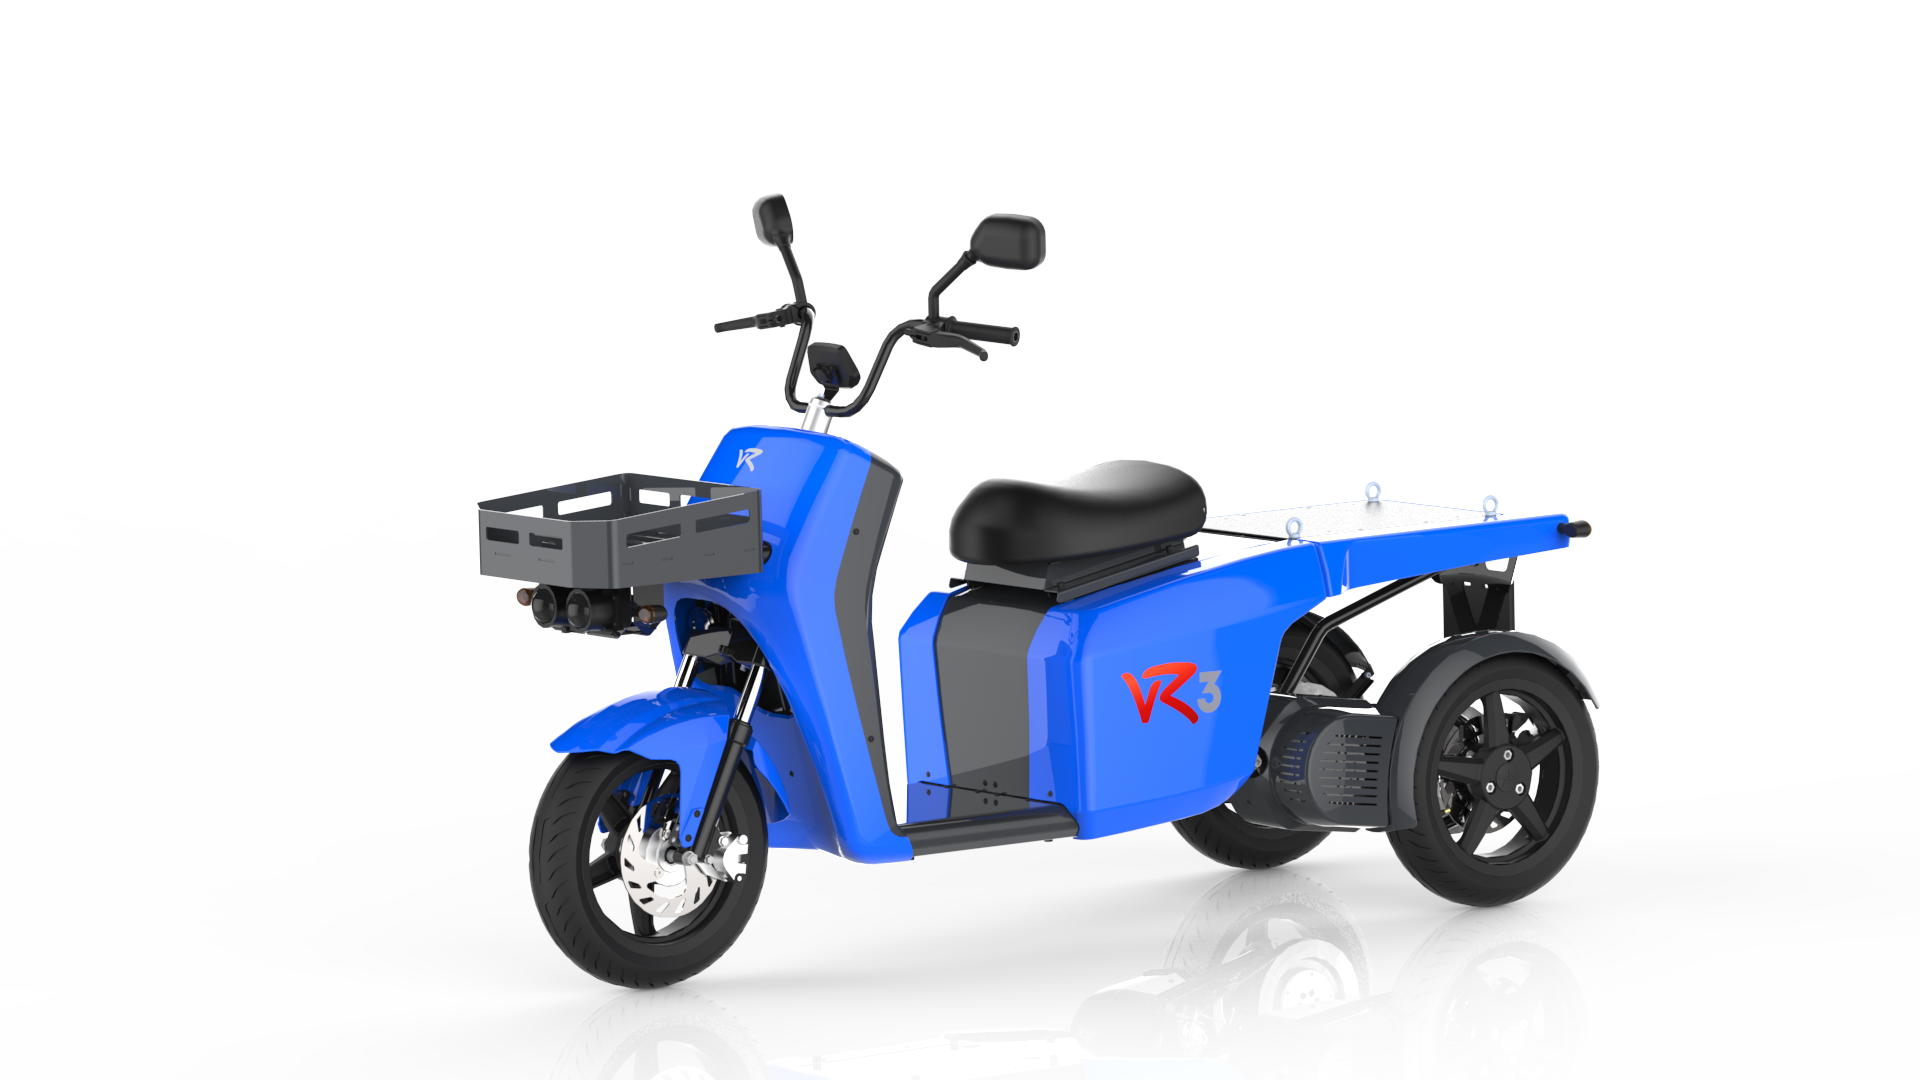 The vR3 electric tricycle as a vehicle for senior citizens and an alternative second car